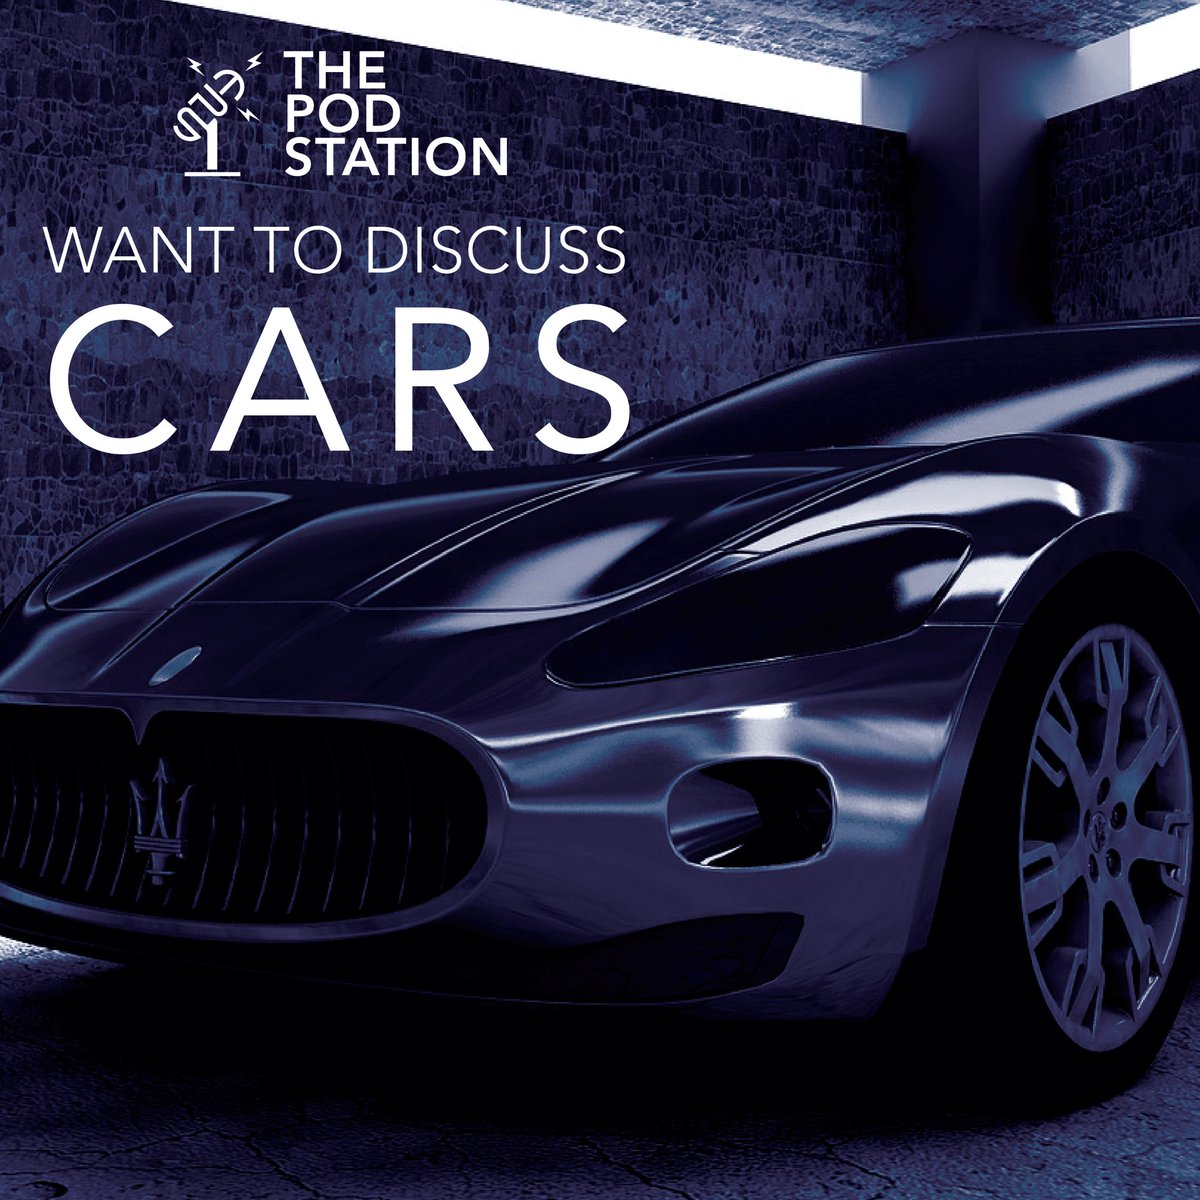 Fancied doing a podcast?  We've created packages to suit all. Check them out: http://thepodstation.co.uk/station-packages/becoming-a-podcaster…  #thepodstation #podcasts #podcasting #podcastnetwork #podcastshow #PodcastSeries #cars #supercars #petrolhead #ferrari #astonmartin #lamborghini #mcclaren #bugatti #porschepic.twitter.com/jTwfs1H9hJ